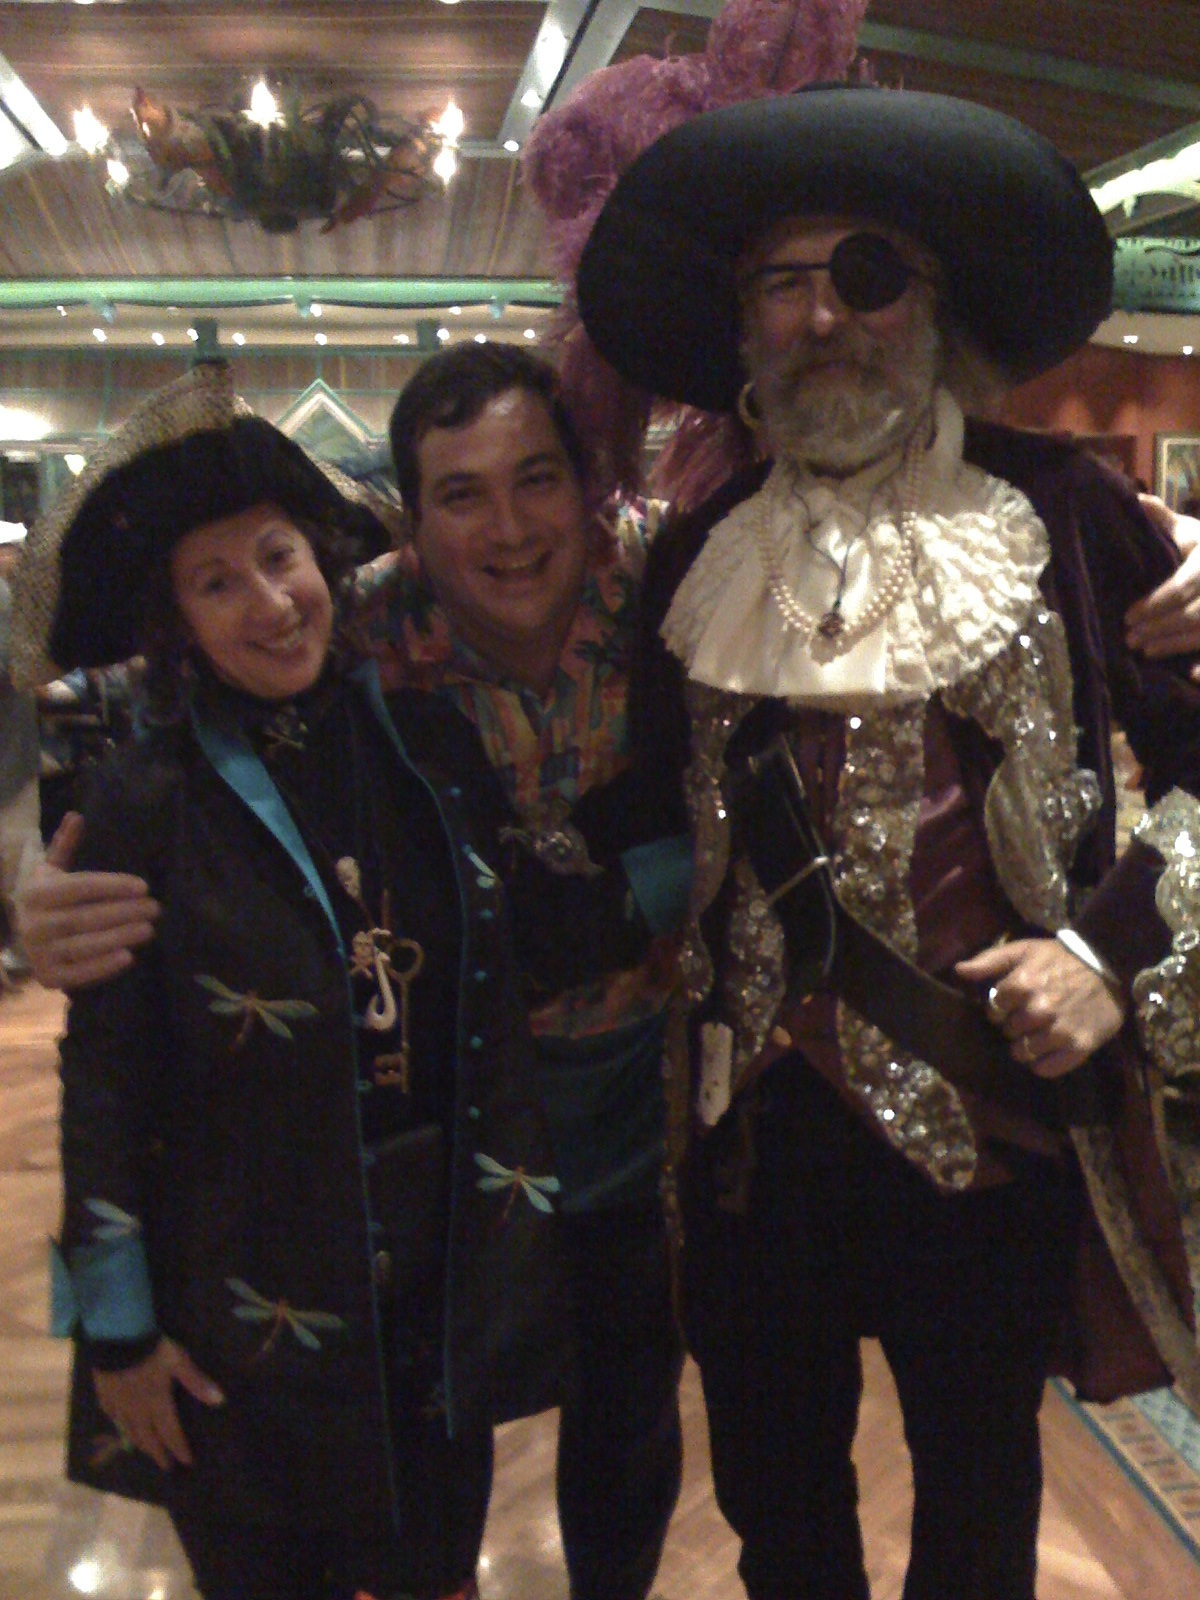 Kerul and Dave as pirates on a Disney cruise